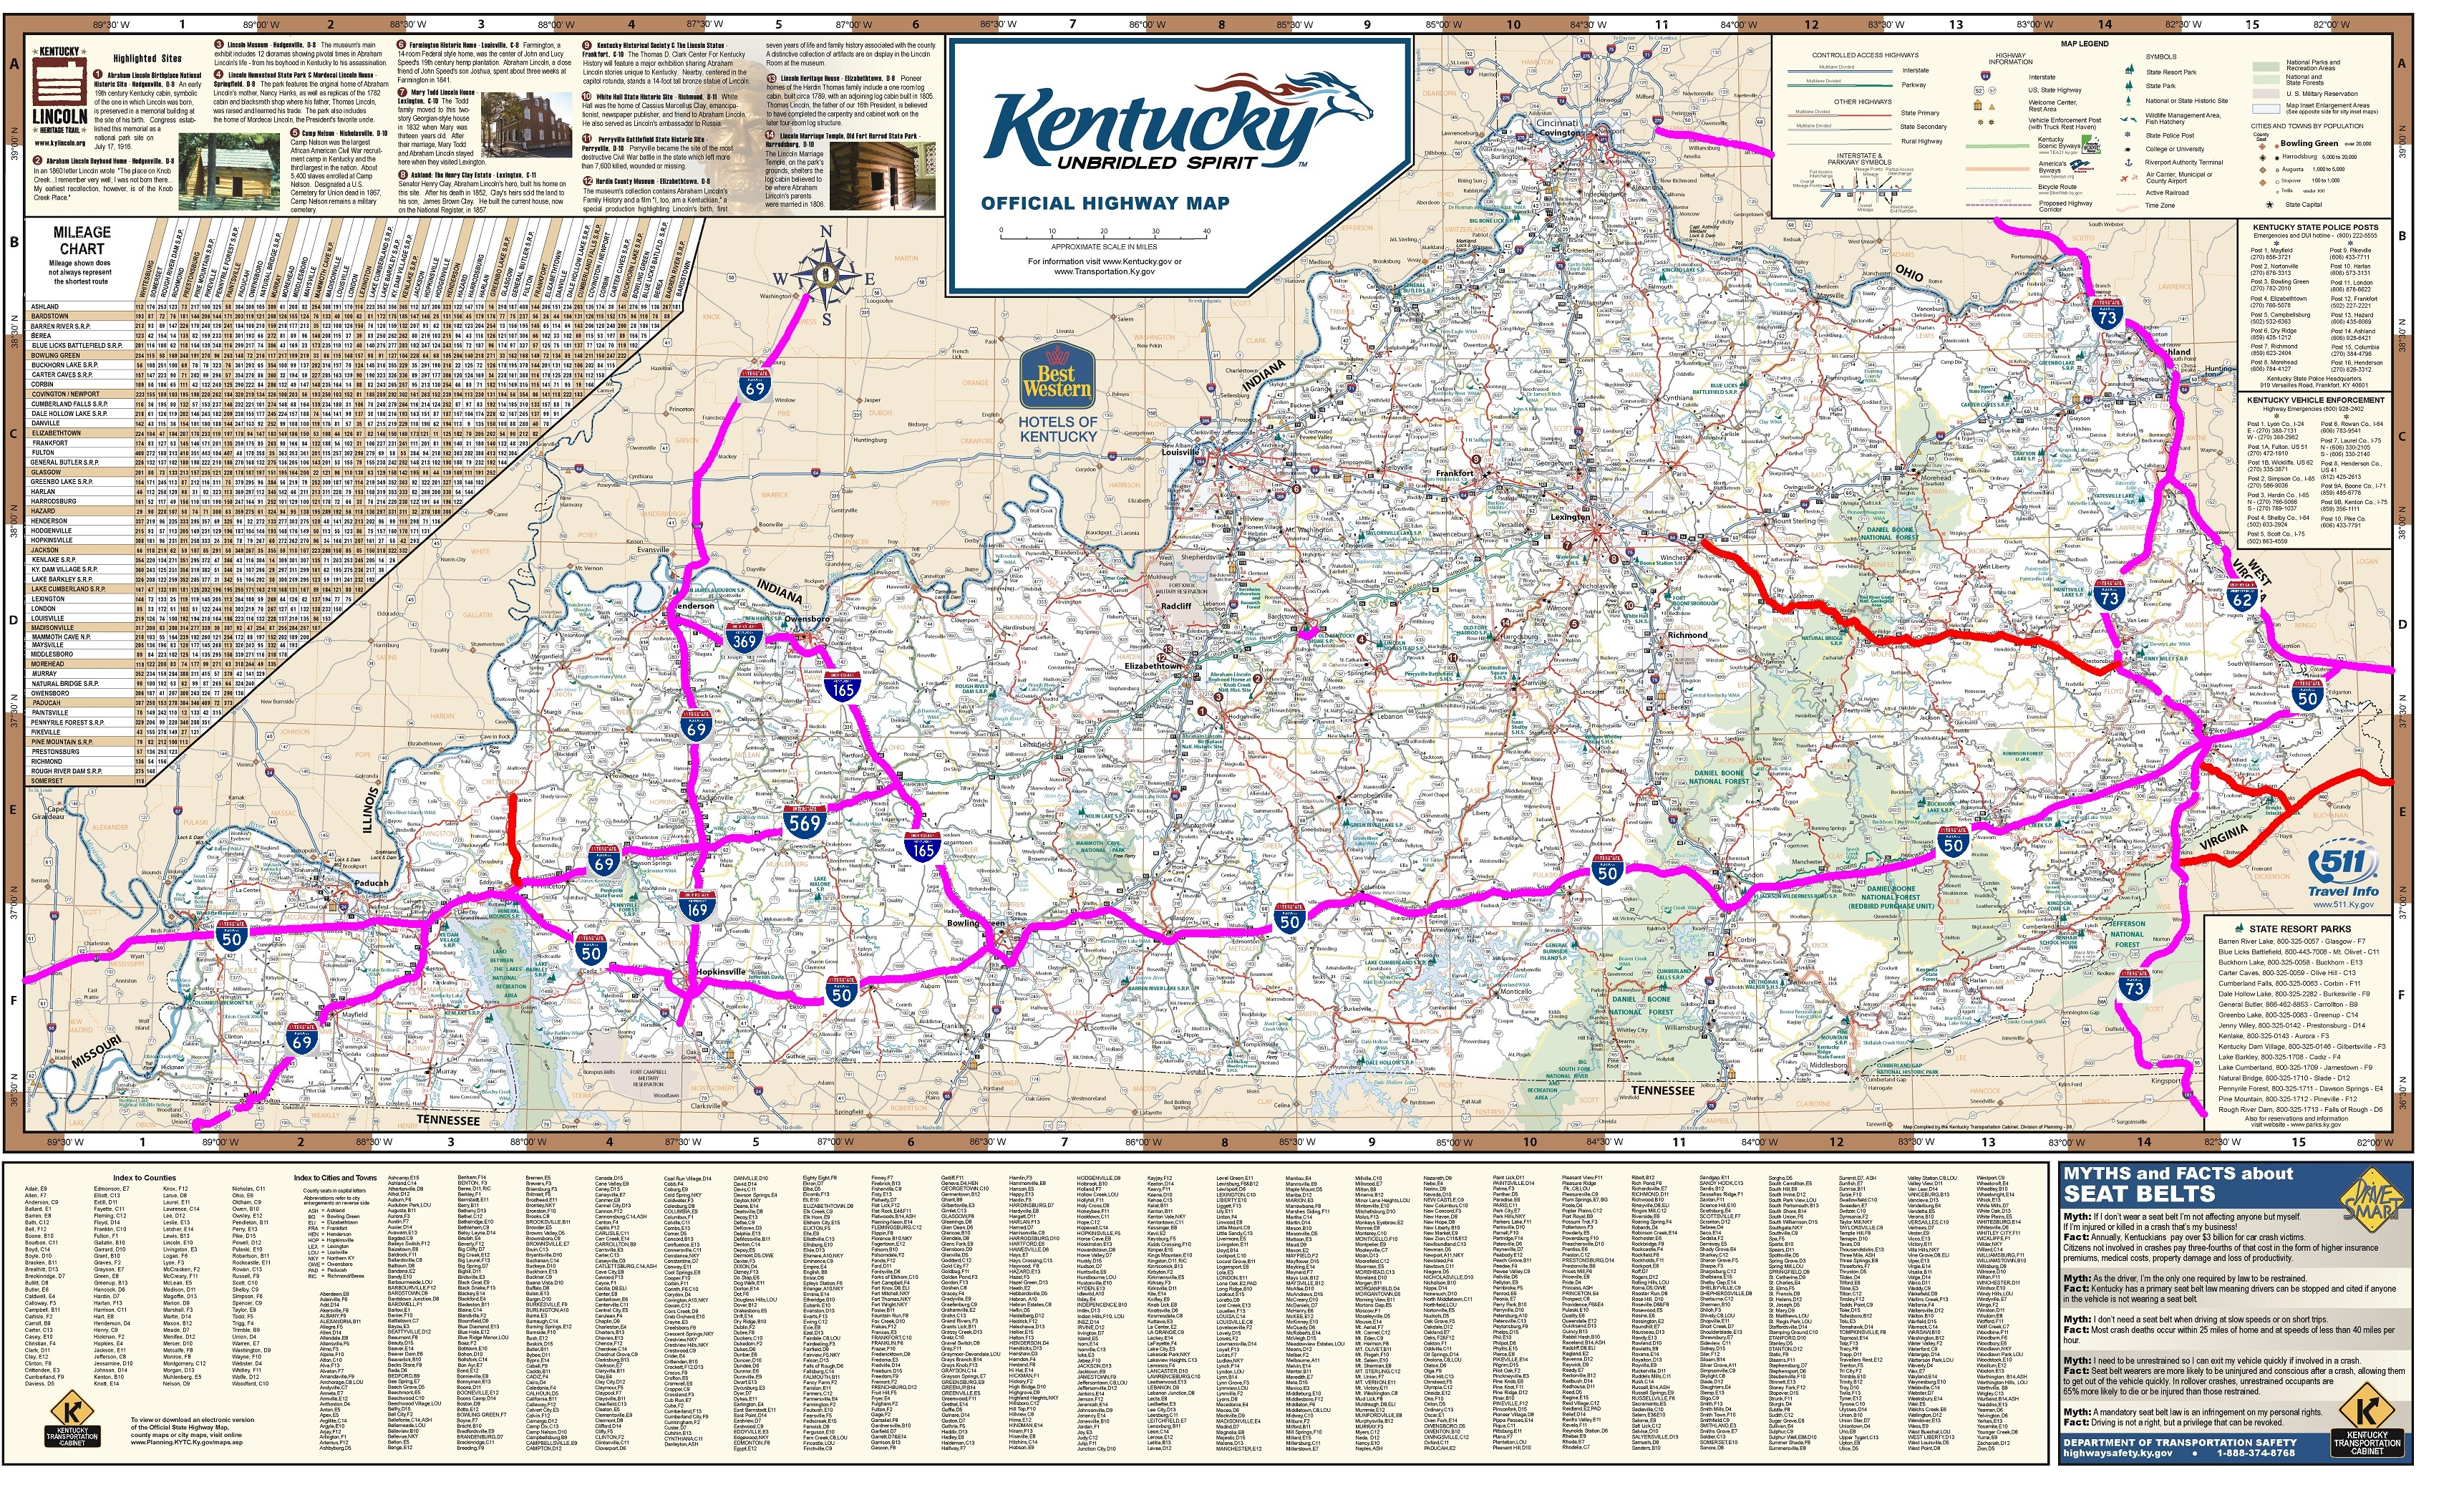 I-50/I-60/I-70/I-80 Trans America Highway Corridor Concept on va interstate map, interstate highway map, co interstate map, ky road maps driving directions, ga interstate map, mi interstate map, ohio interstate map, se interstate map, indiana interstate map, md interstate map, fl interstate map, il interstate map, louisville interstate map, ny state interstate map, tx interstate map, az interstate map, tn interstate map, nc interstate map, sc interstate map, kentucky official highway map,